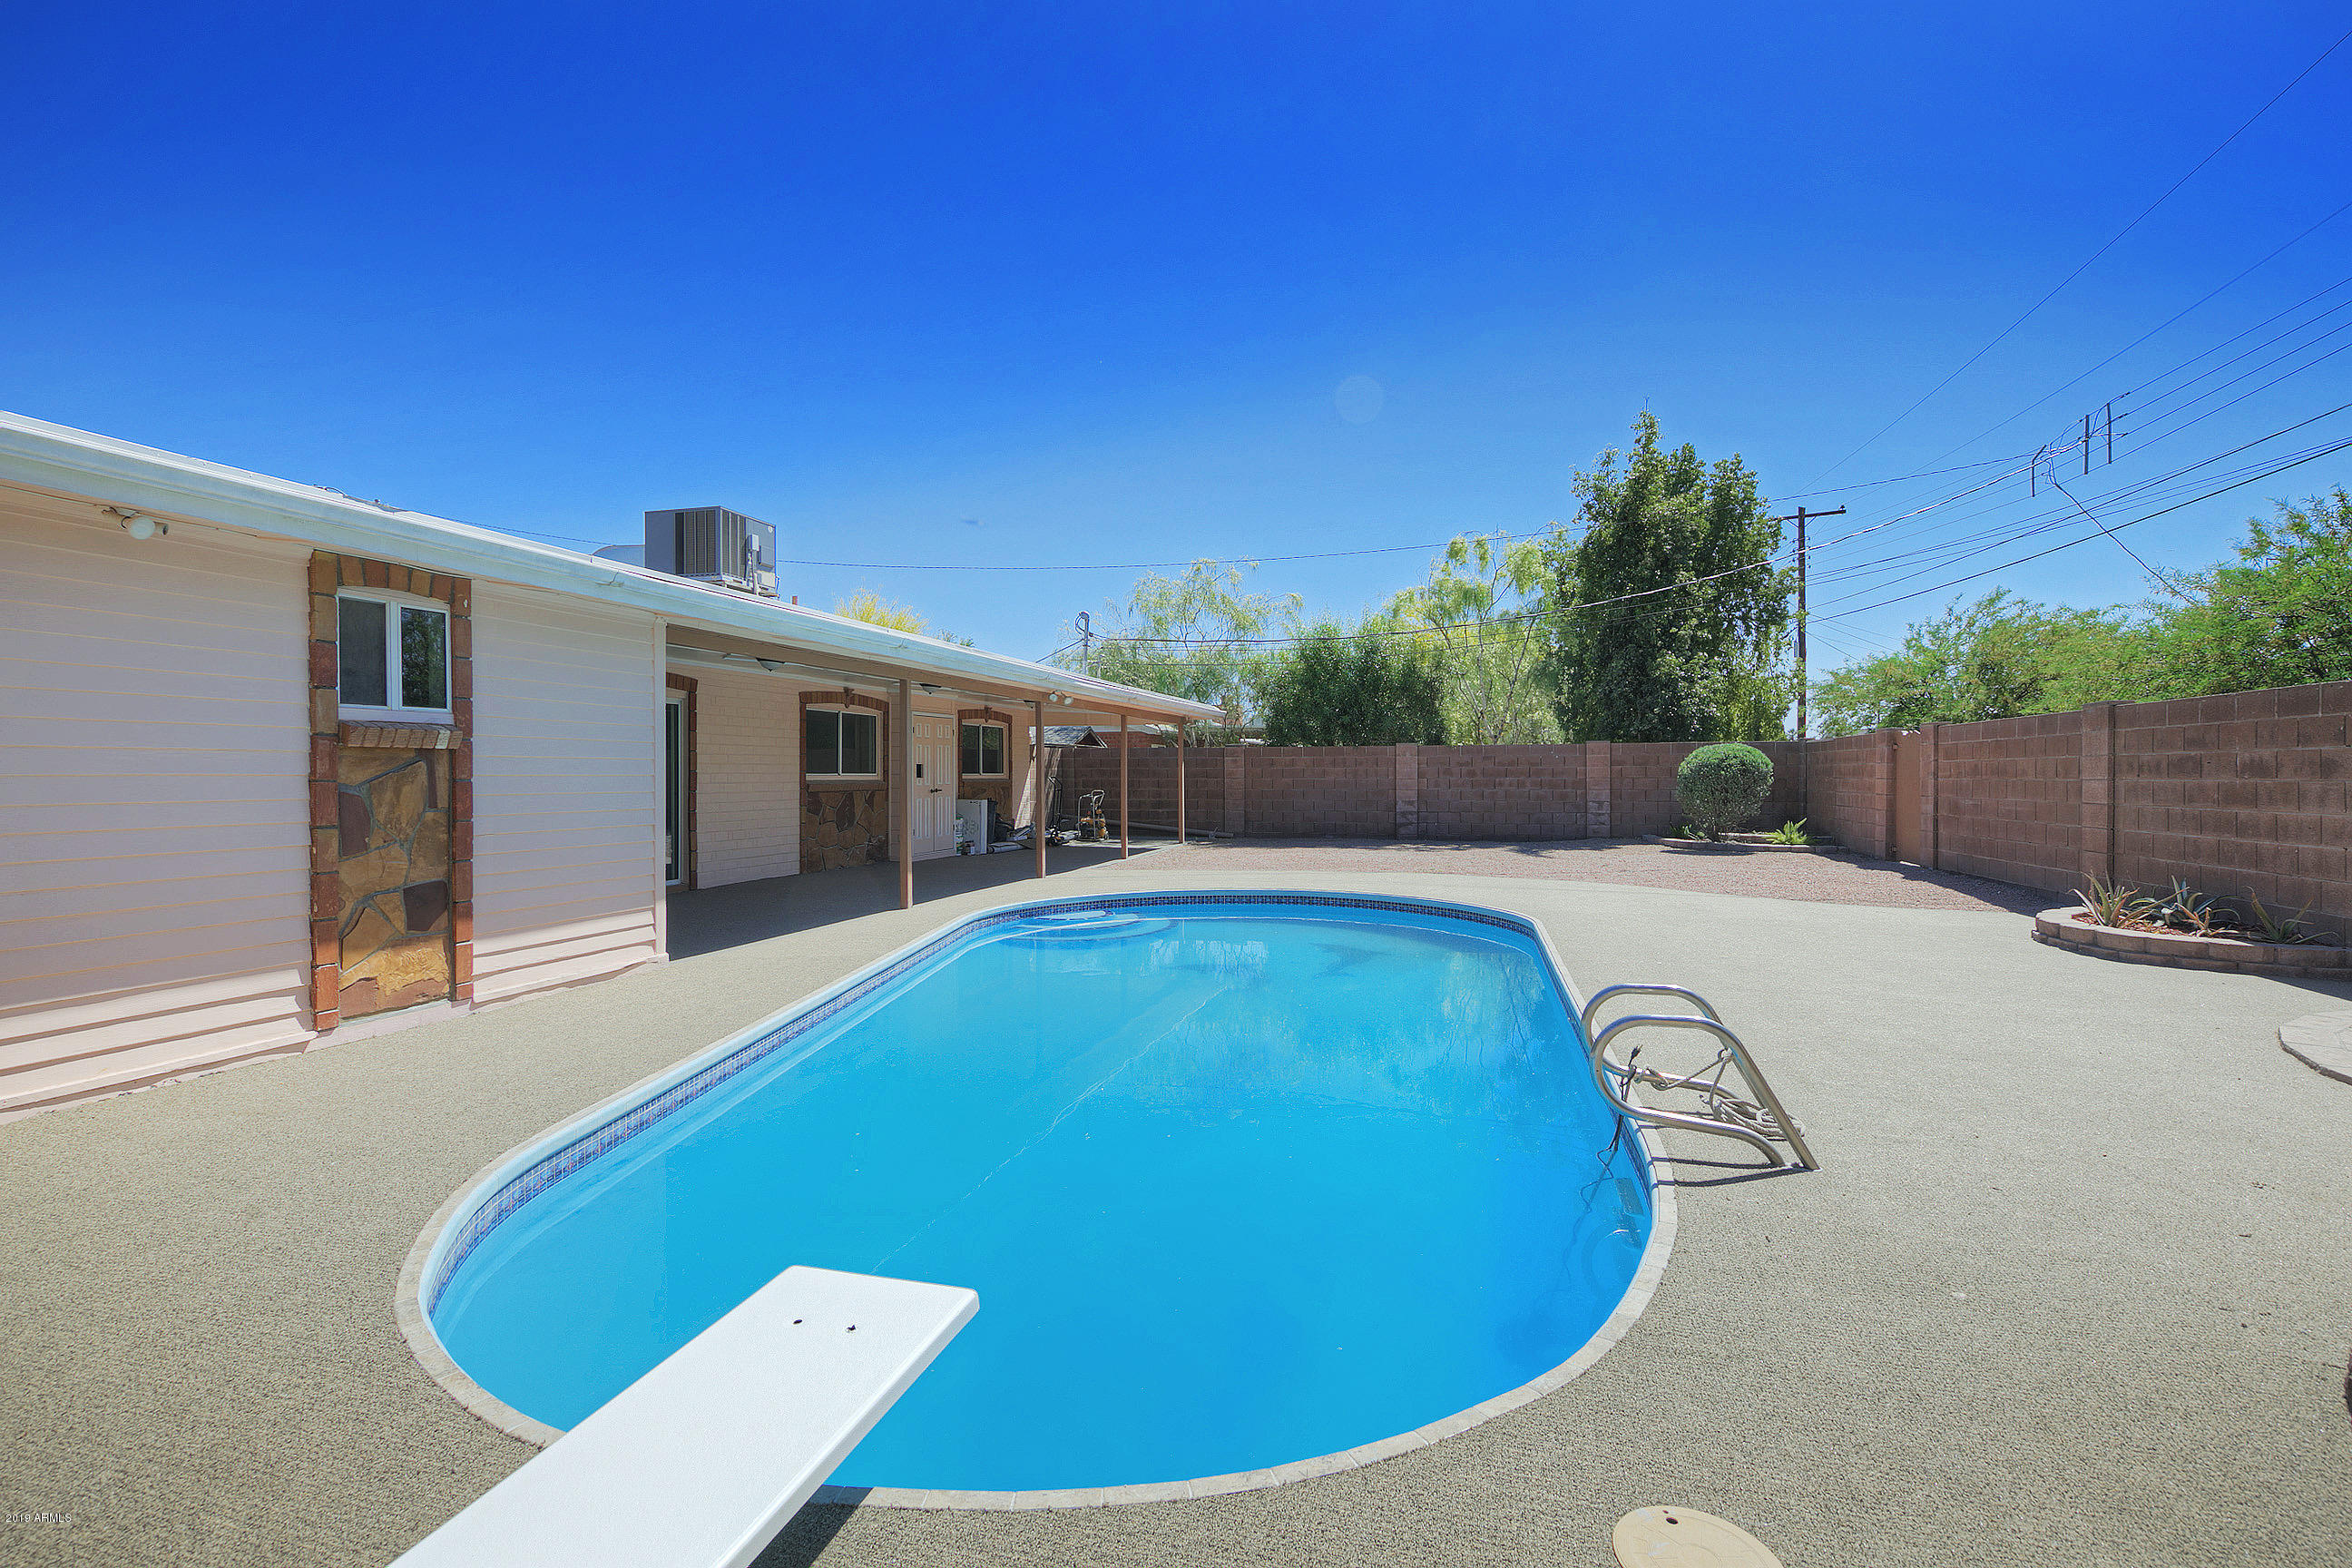 MLS 5920443 7257 E Vernon Avenue, Scottsdale, AZ 85257 Scottsdale AZ Private Pool